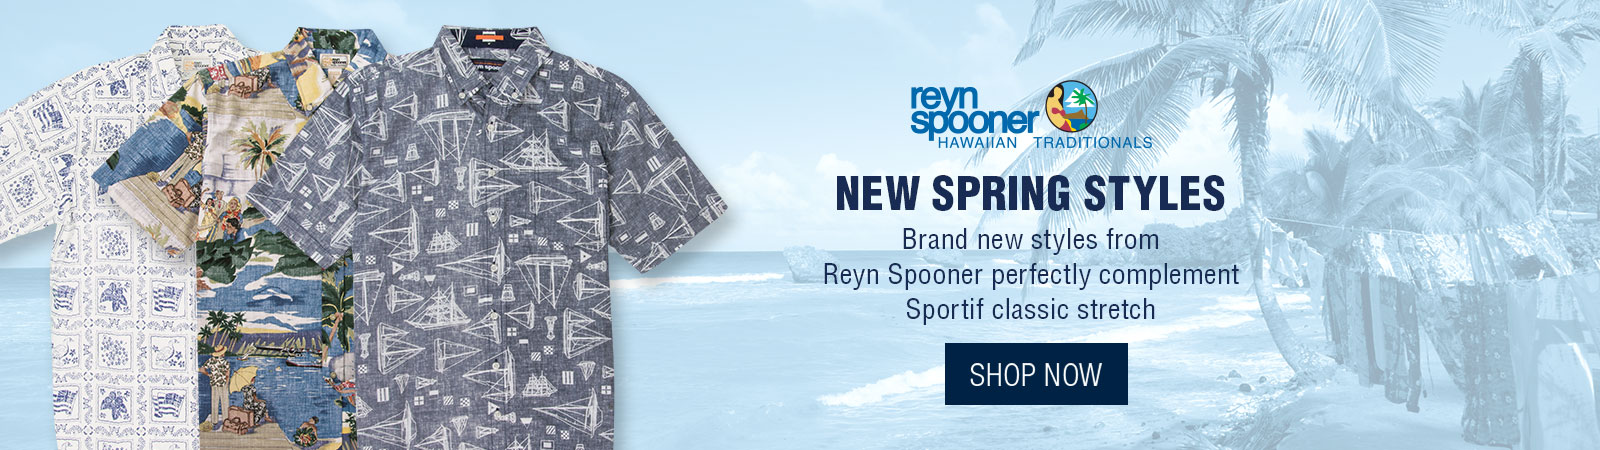 Shop New Spring Styles